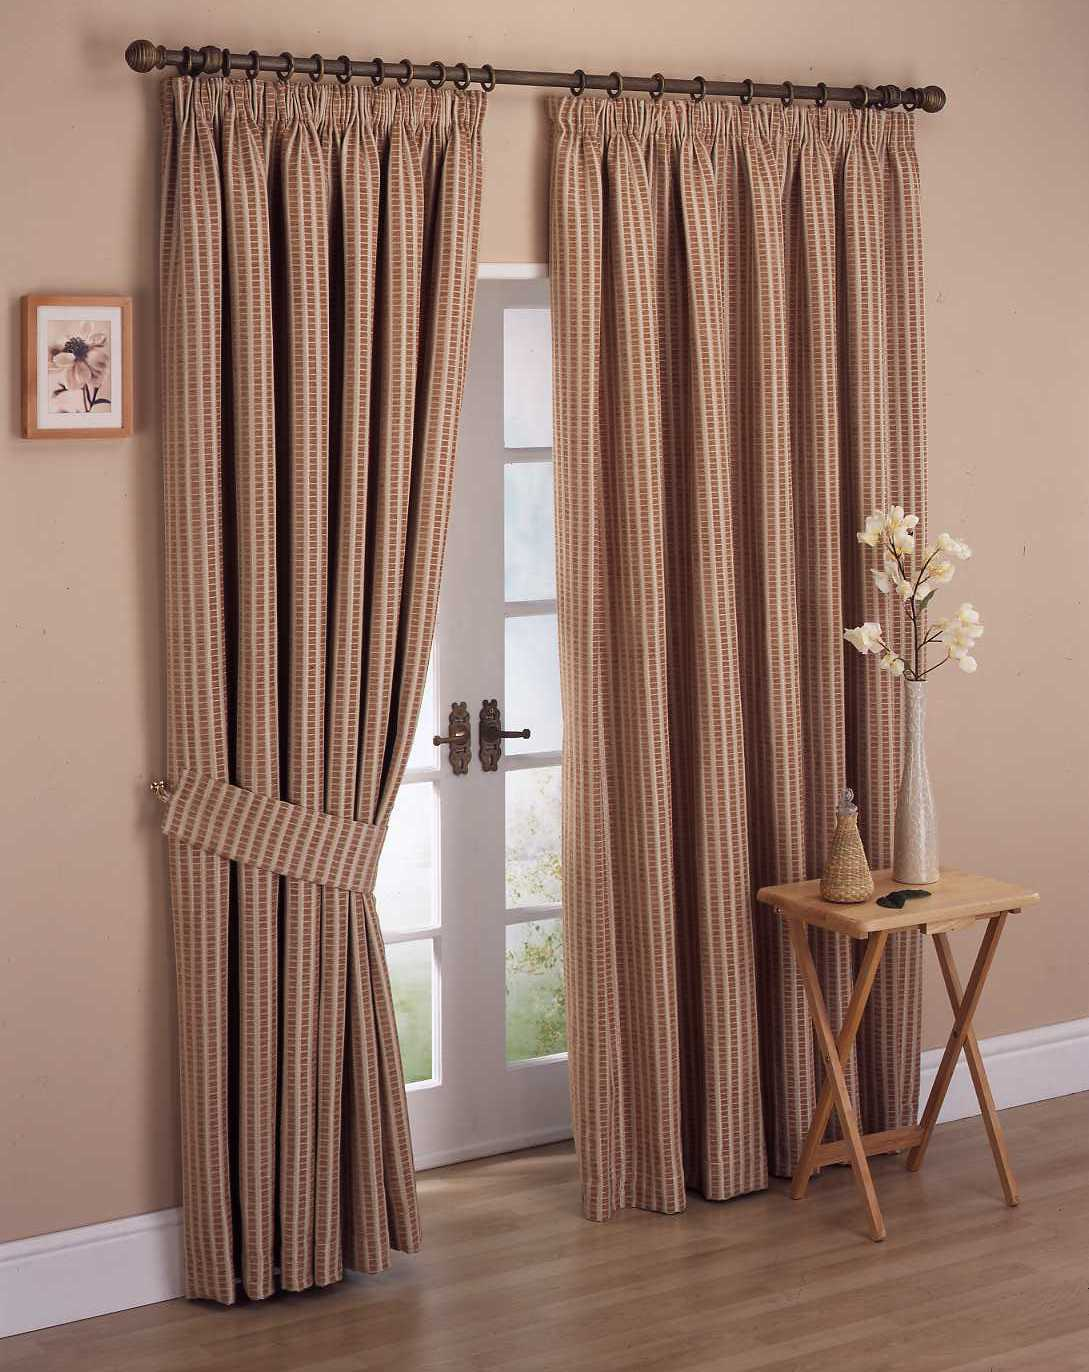 Top catalog of classic curtains designs 2013 for Bedroom curtain designs photos